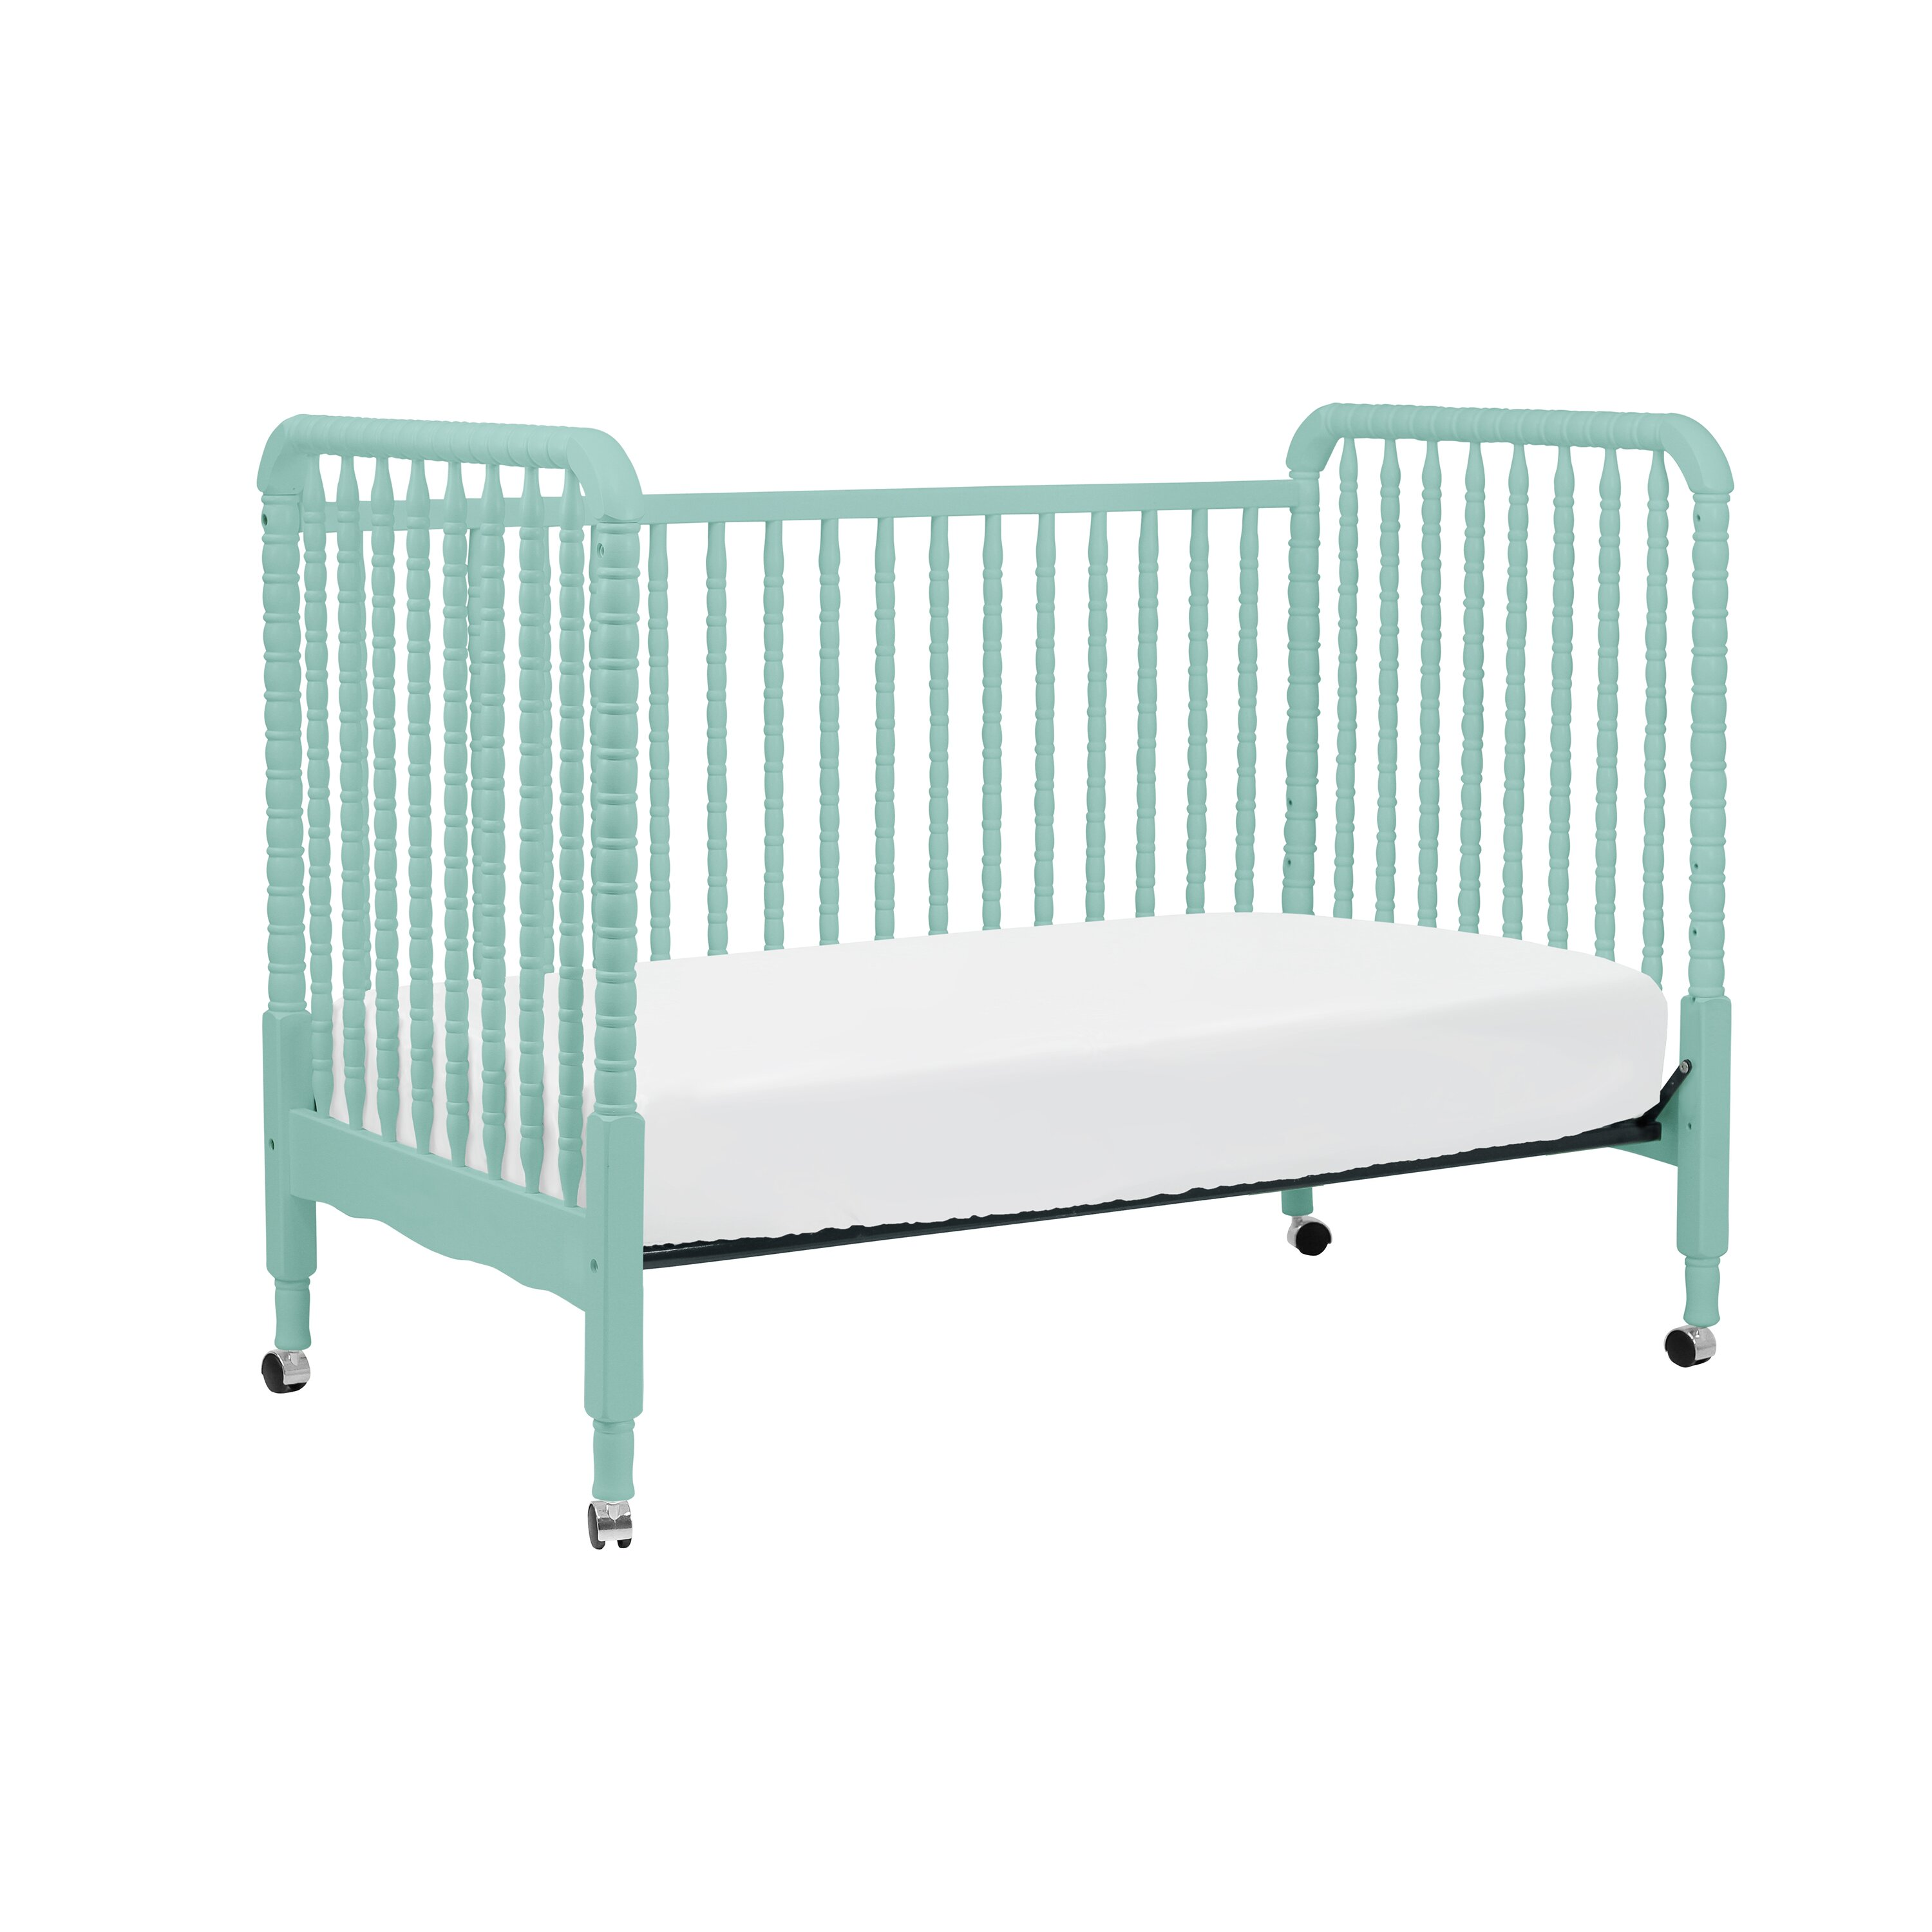 davinci jenny lind 3in1 convertible crib with conversion kit - Crib Conversion Kit